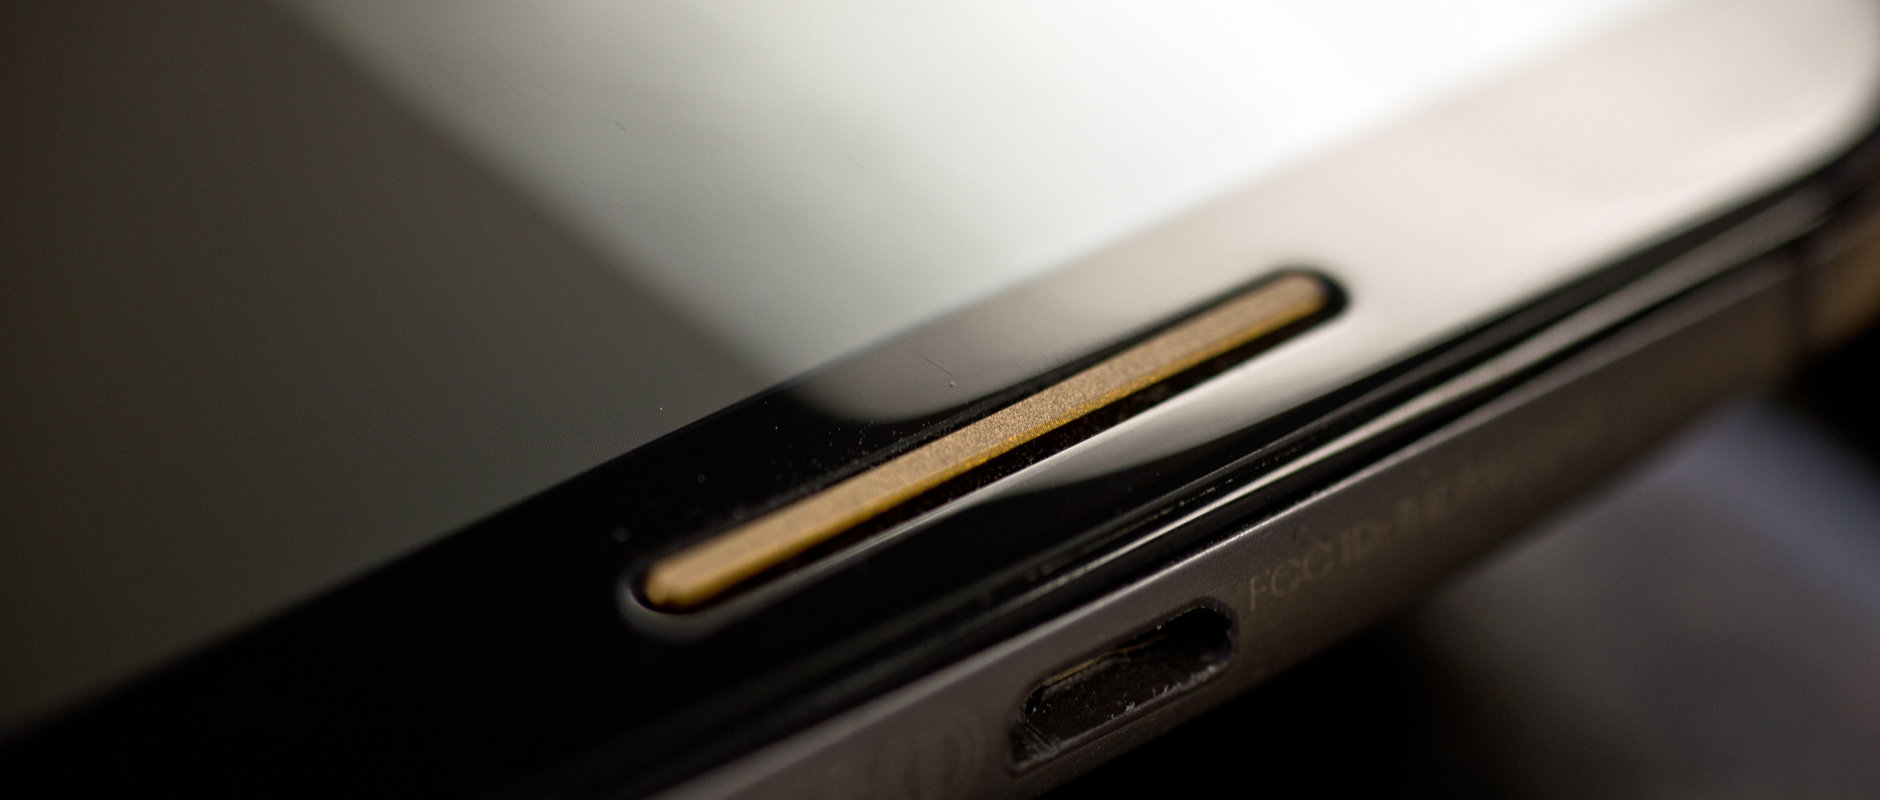 The speaker grille of the Motorola Moto X (2014 edition).